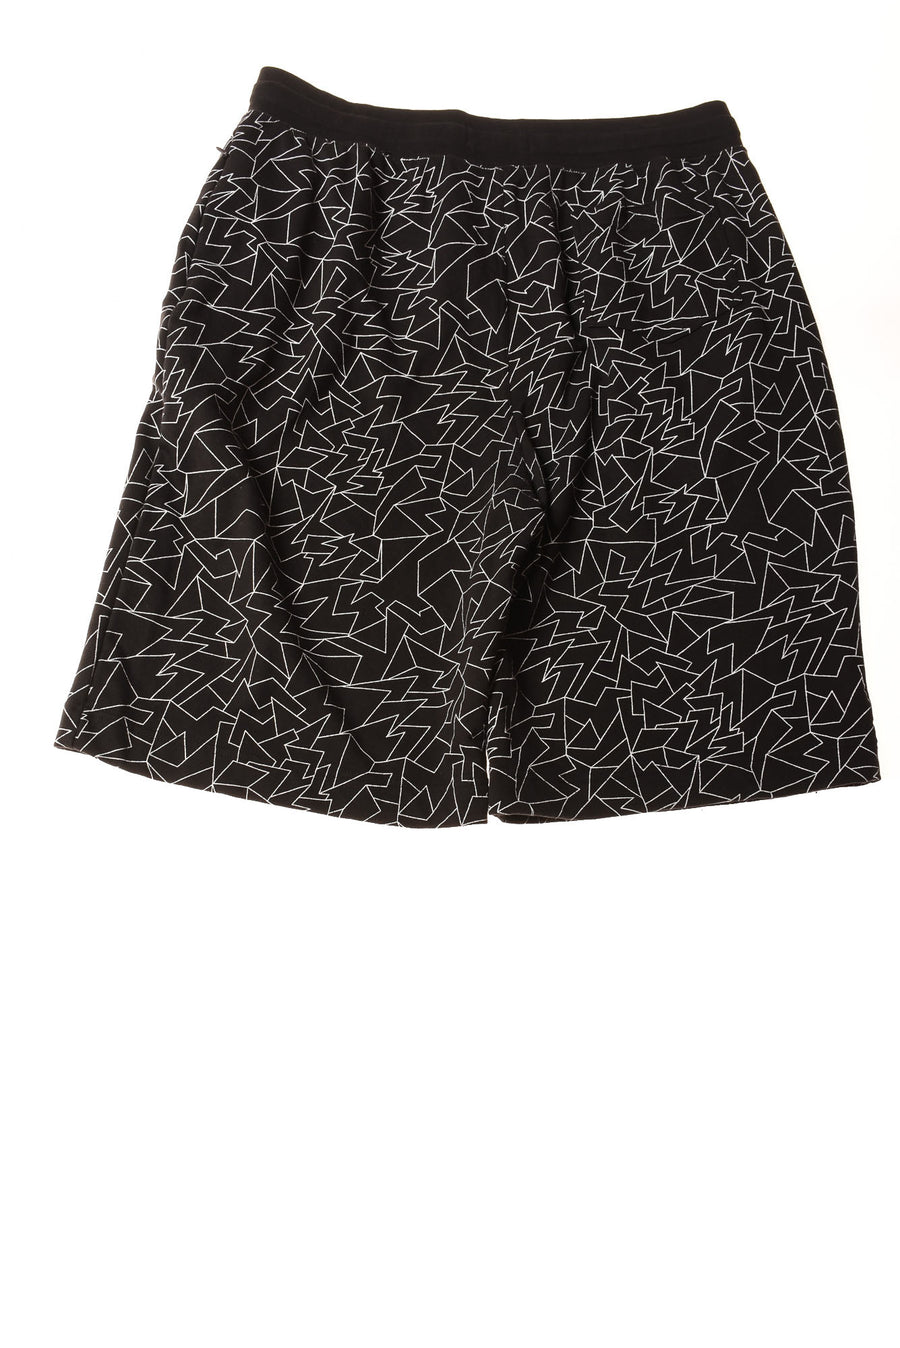 USED Champs Sports Gear Women's Shorts 3X Black / Print